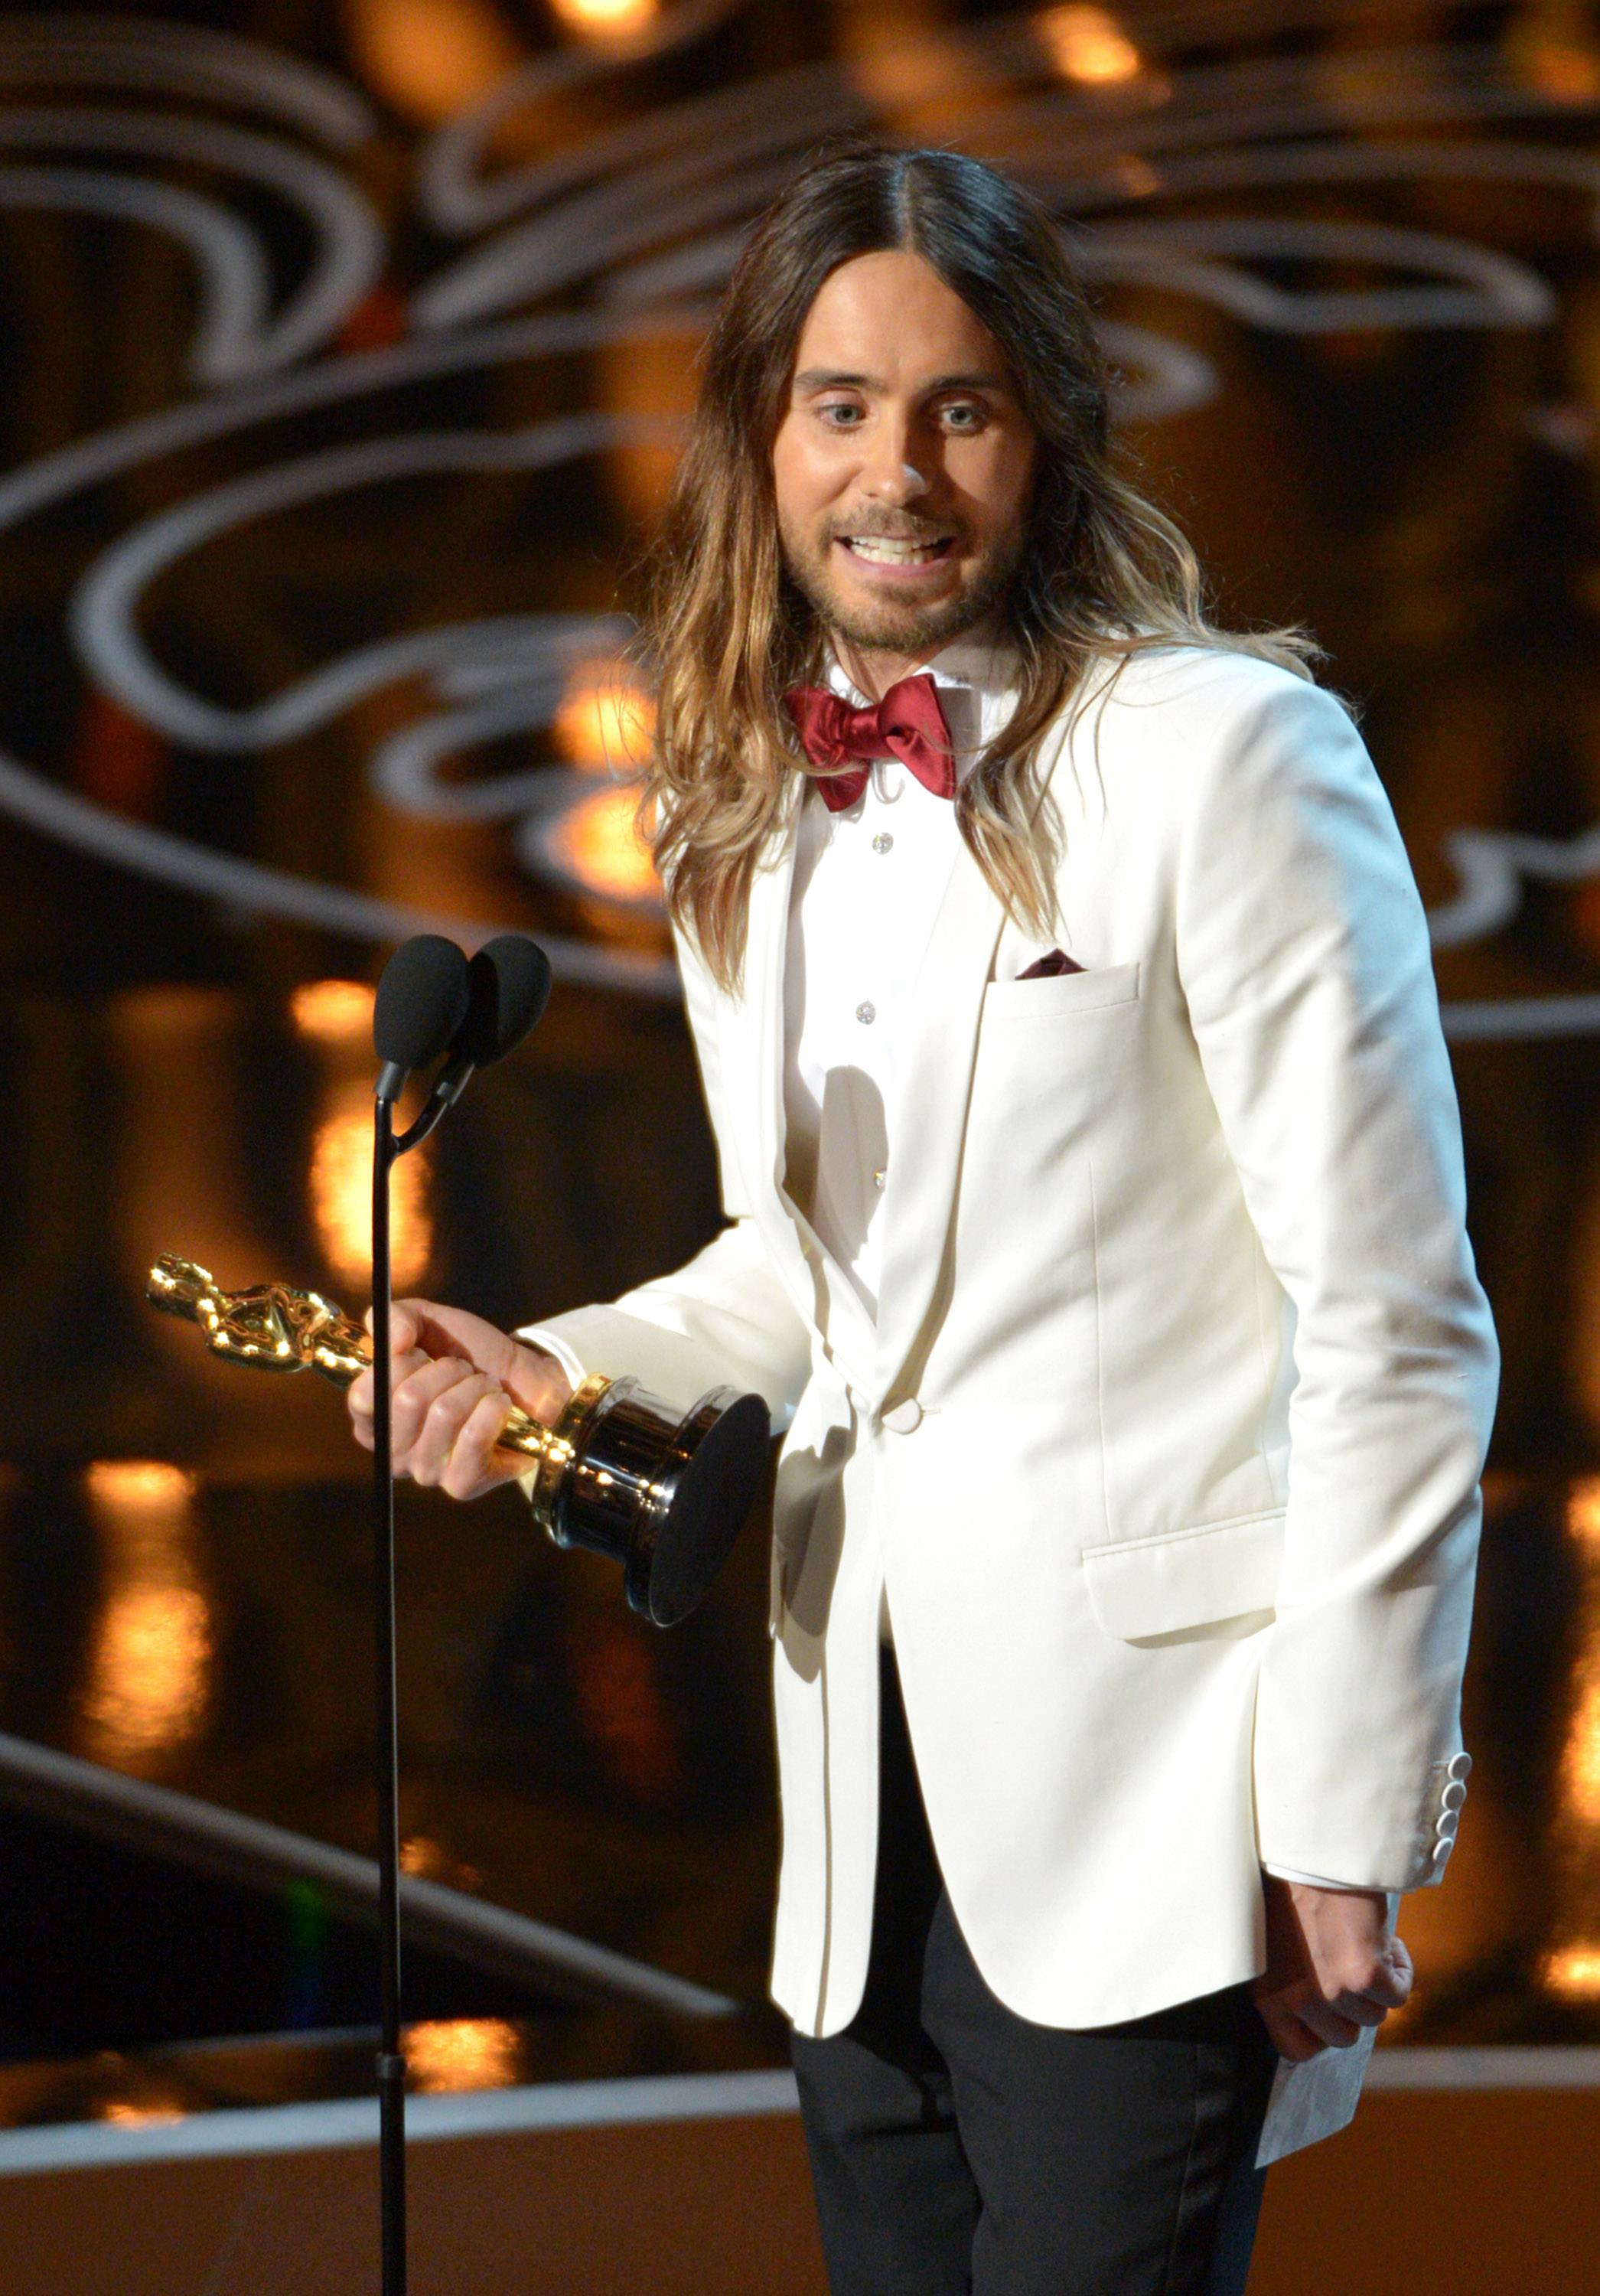 Watch Jared Leto's acceptance speech on YouTube's Oscar channel.